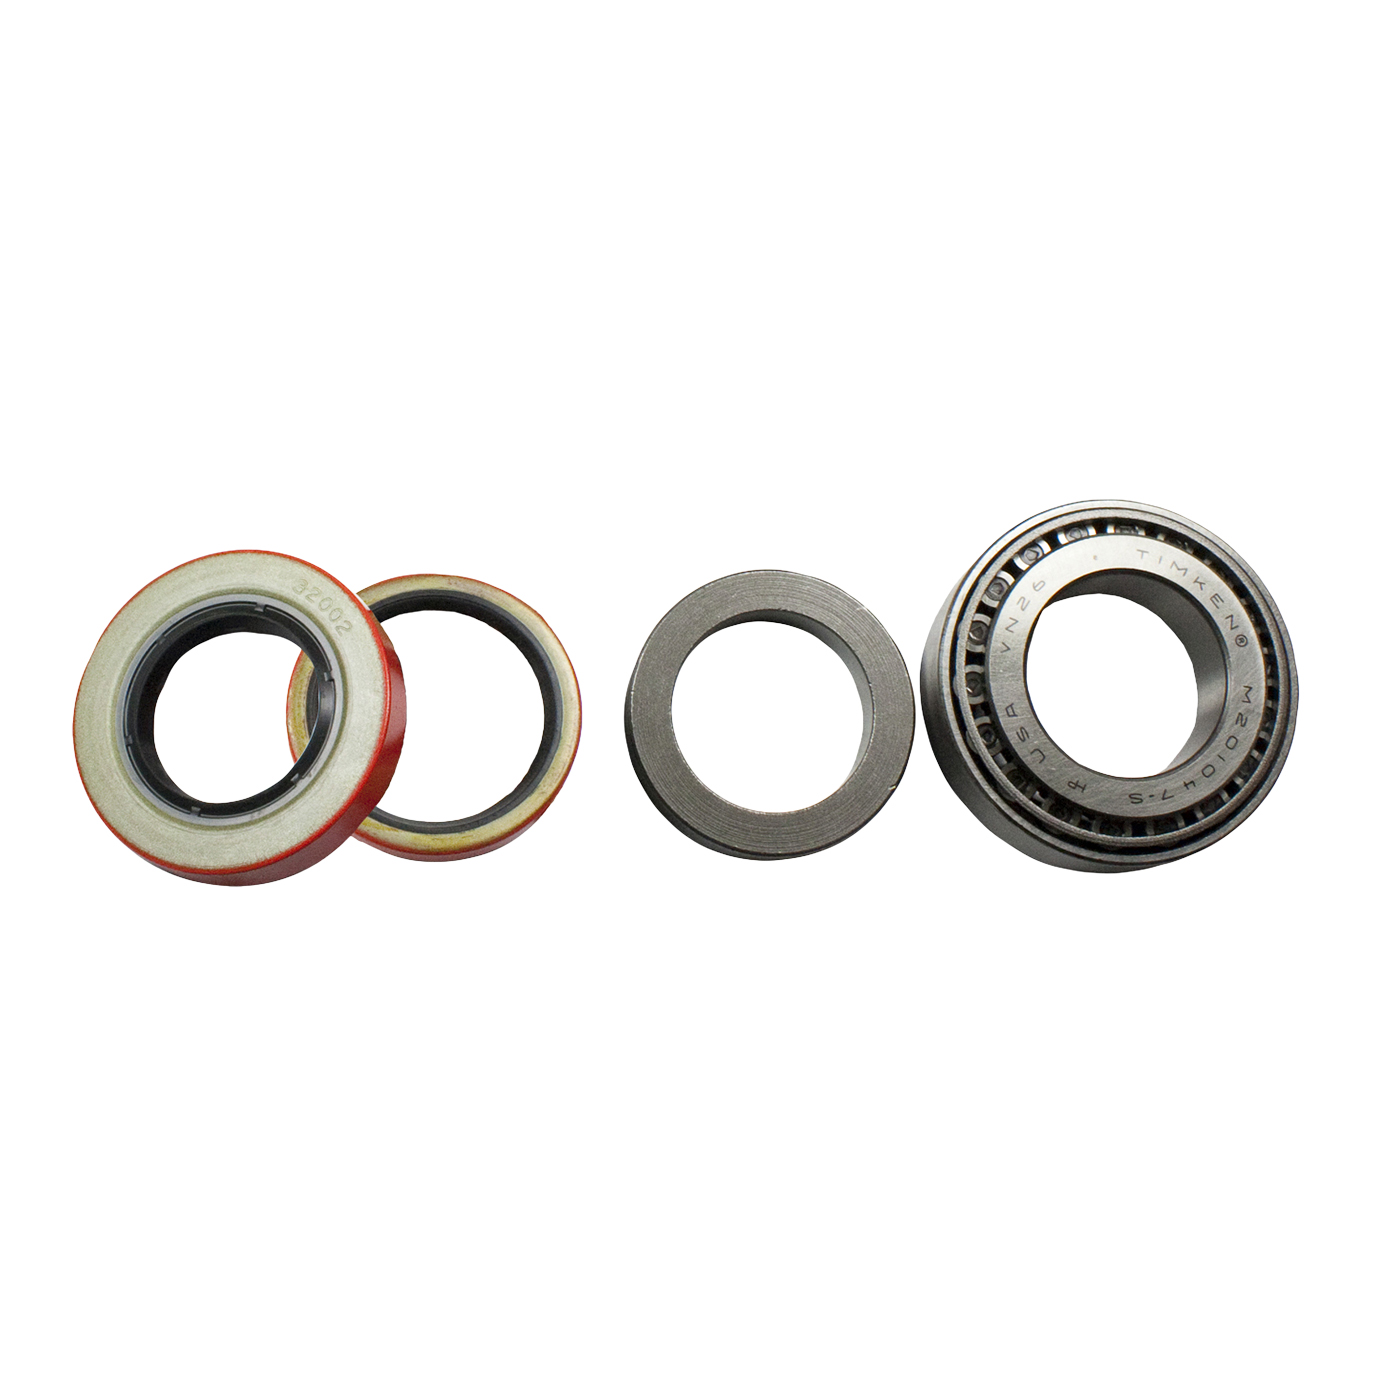 AK C8.75-OEM - Yukon Rear Axle Bearing and Seal Kit for Chrysler